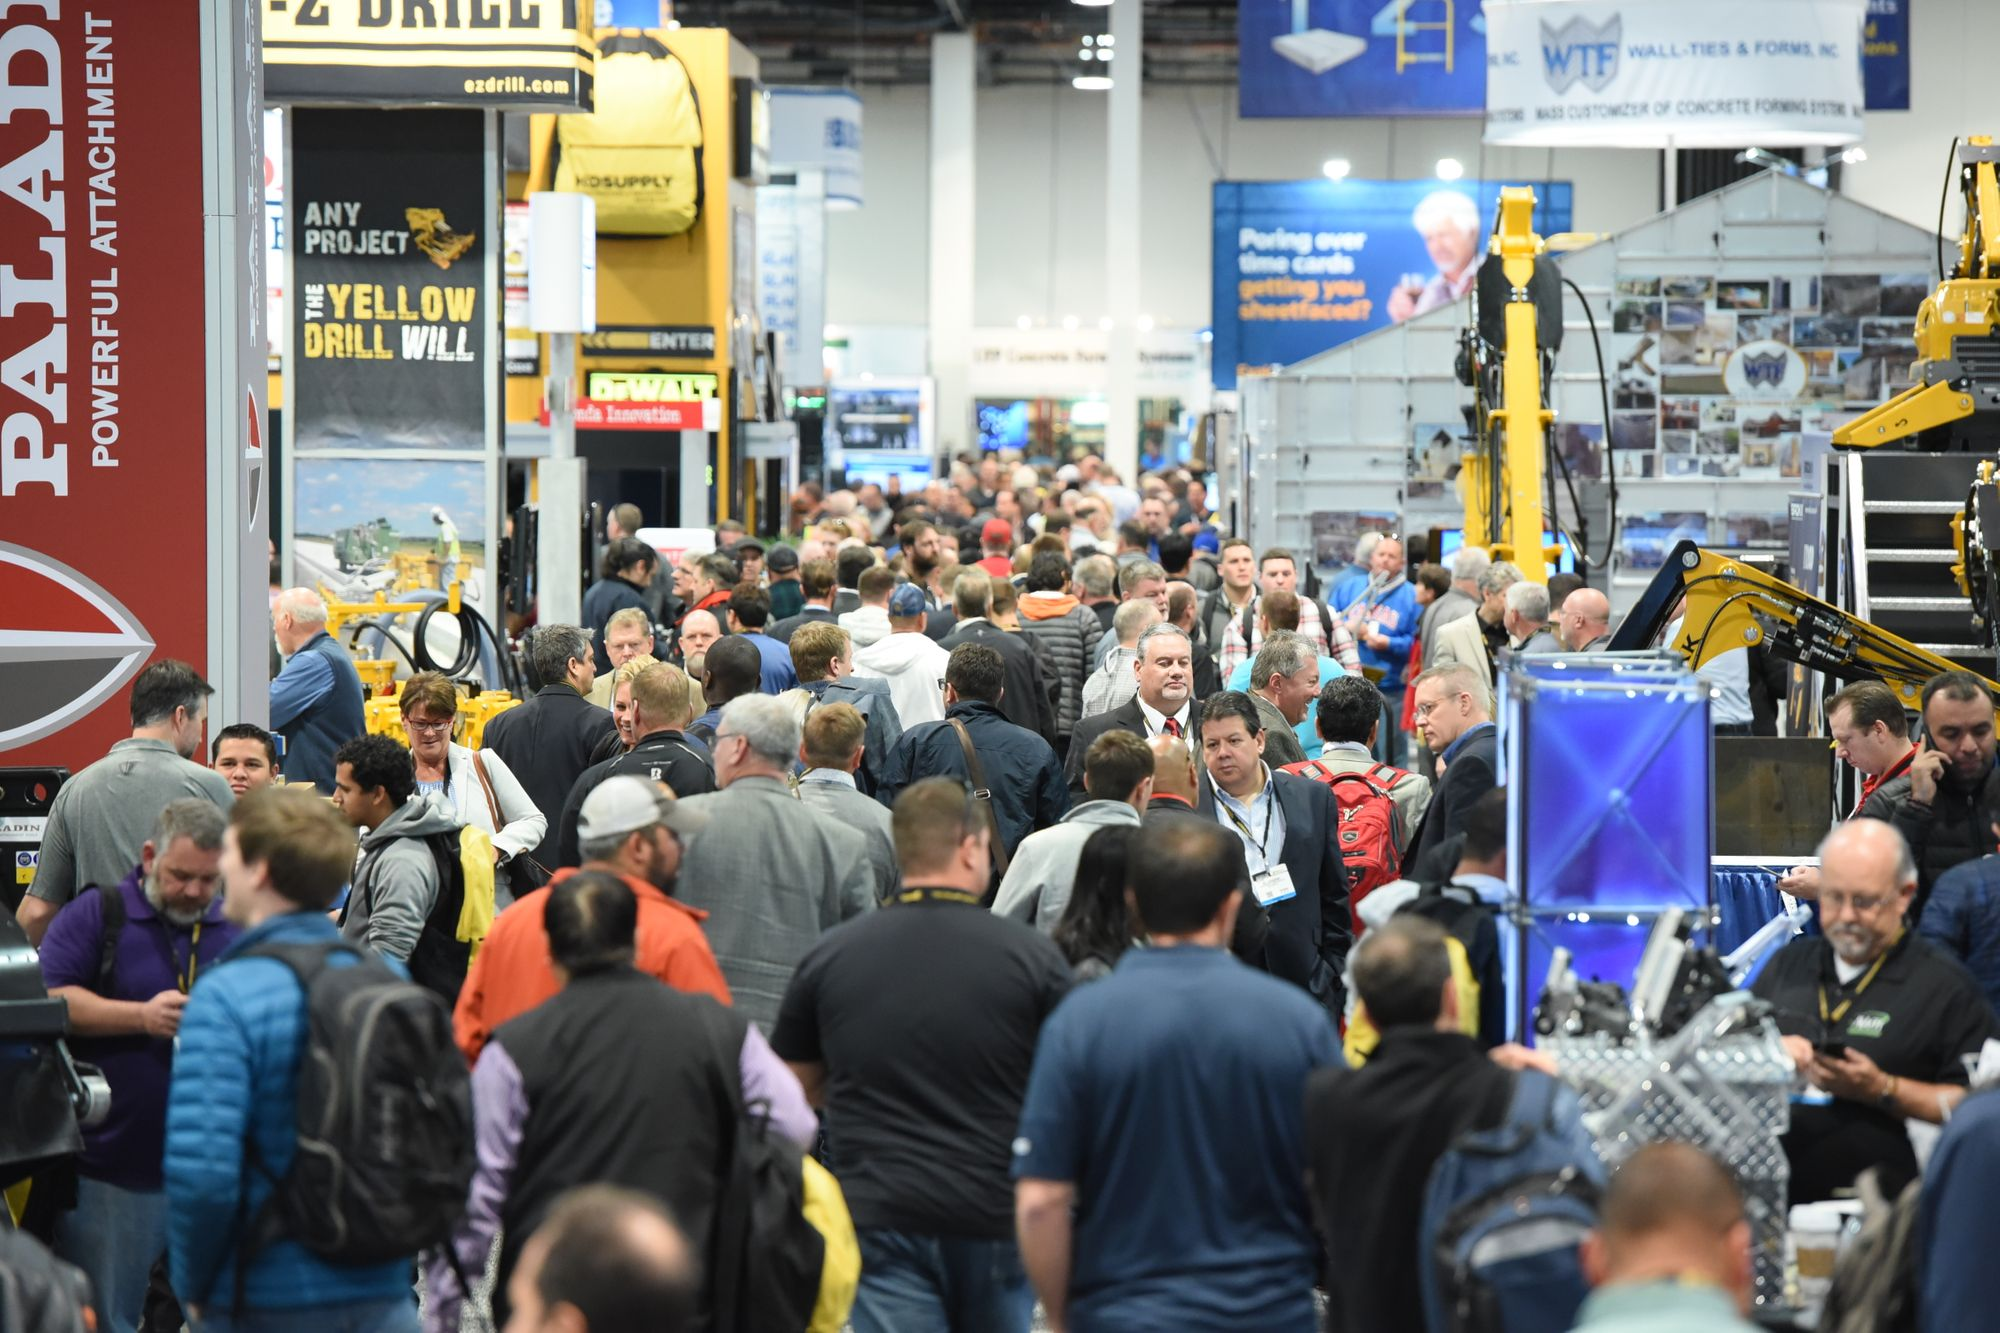 Heading to World of Concrete 2018? Here's our survival guide for trade show attendees